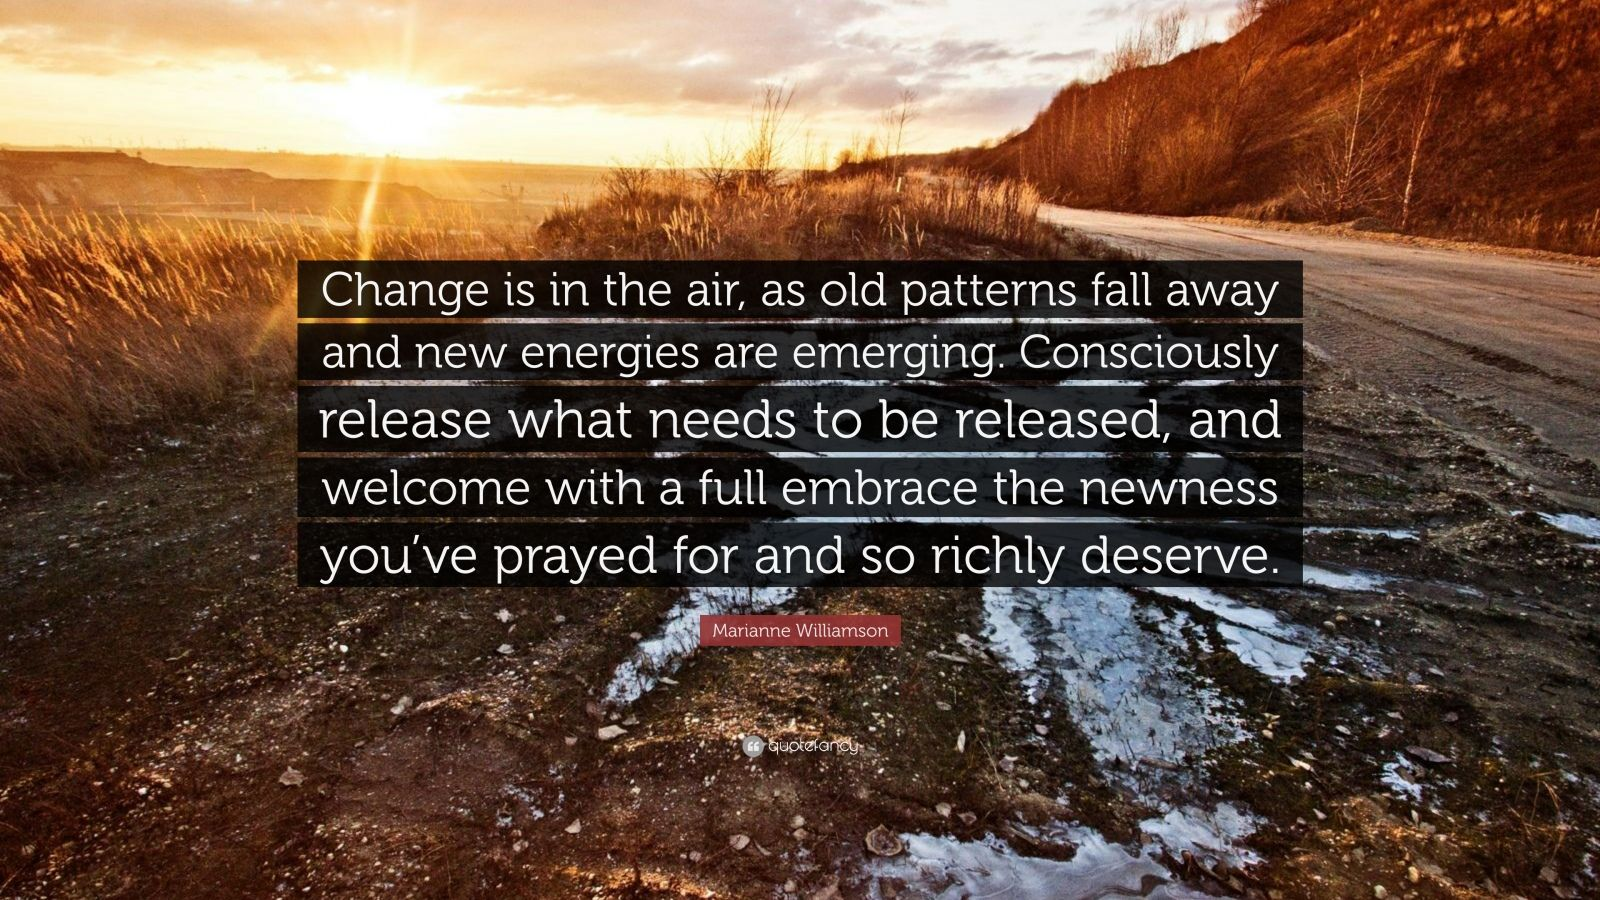 "Marianne Williamson Quote: ""Change is in the air, as old patterns fall away and new energies are emerging. Consciously release what needs to be released, and welcome with a full embrace the newness you've prayed for and so richly deserve."""